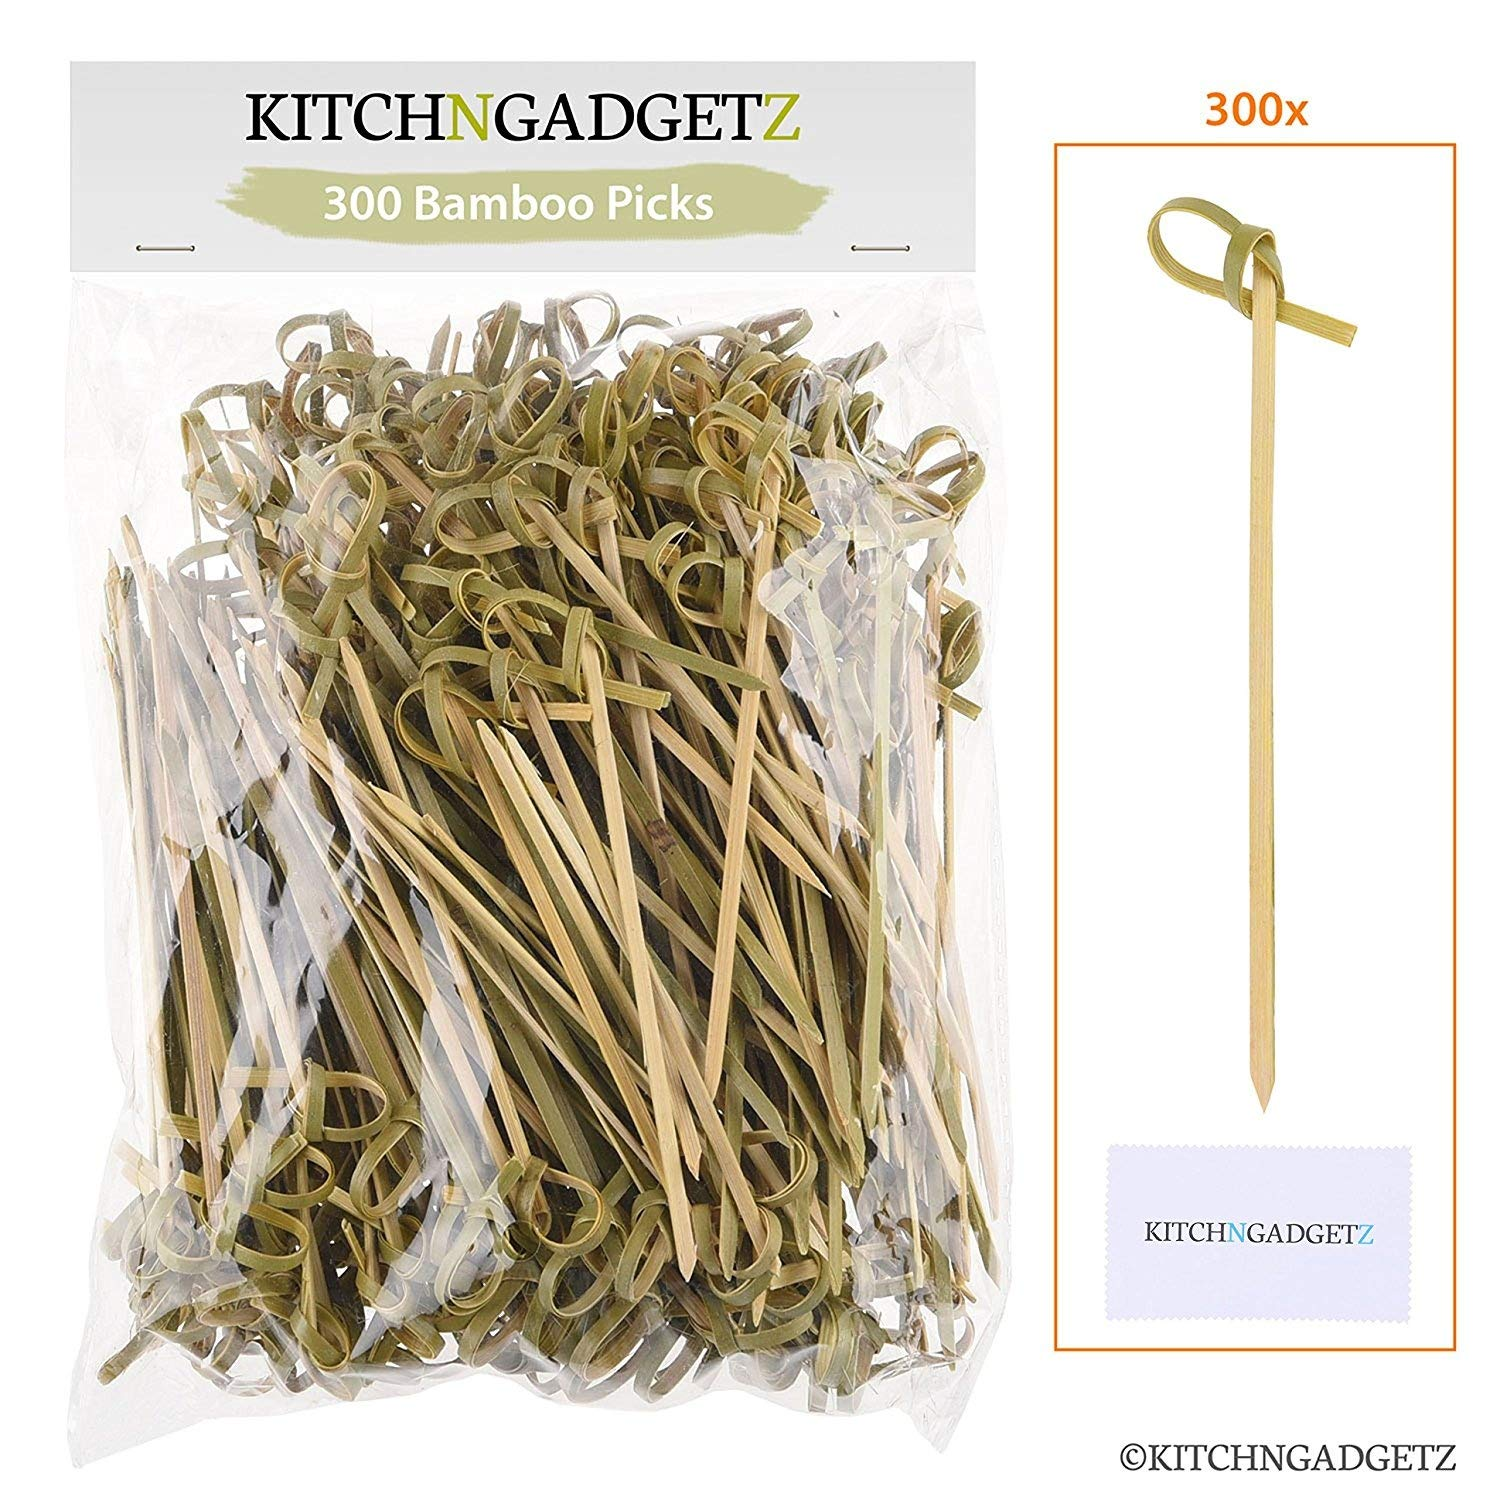 Bamboo Cocktail Picks - 300 Pack - 4.1 inch - With Looped Knot - Great for Cocktail Party or Barbeque Snacks, Club Sandwiches, etc. - Natural Bamboo - Keeps Ingredients Pinned Together - Stylish Kitch N Gadgetz KG-163-BAM